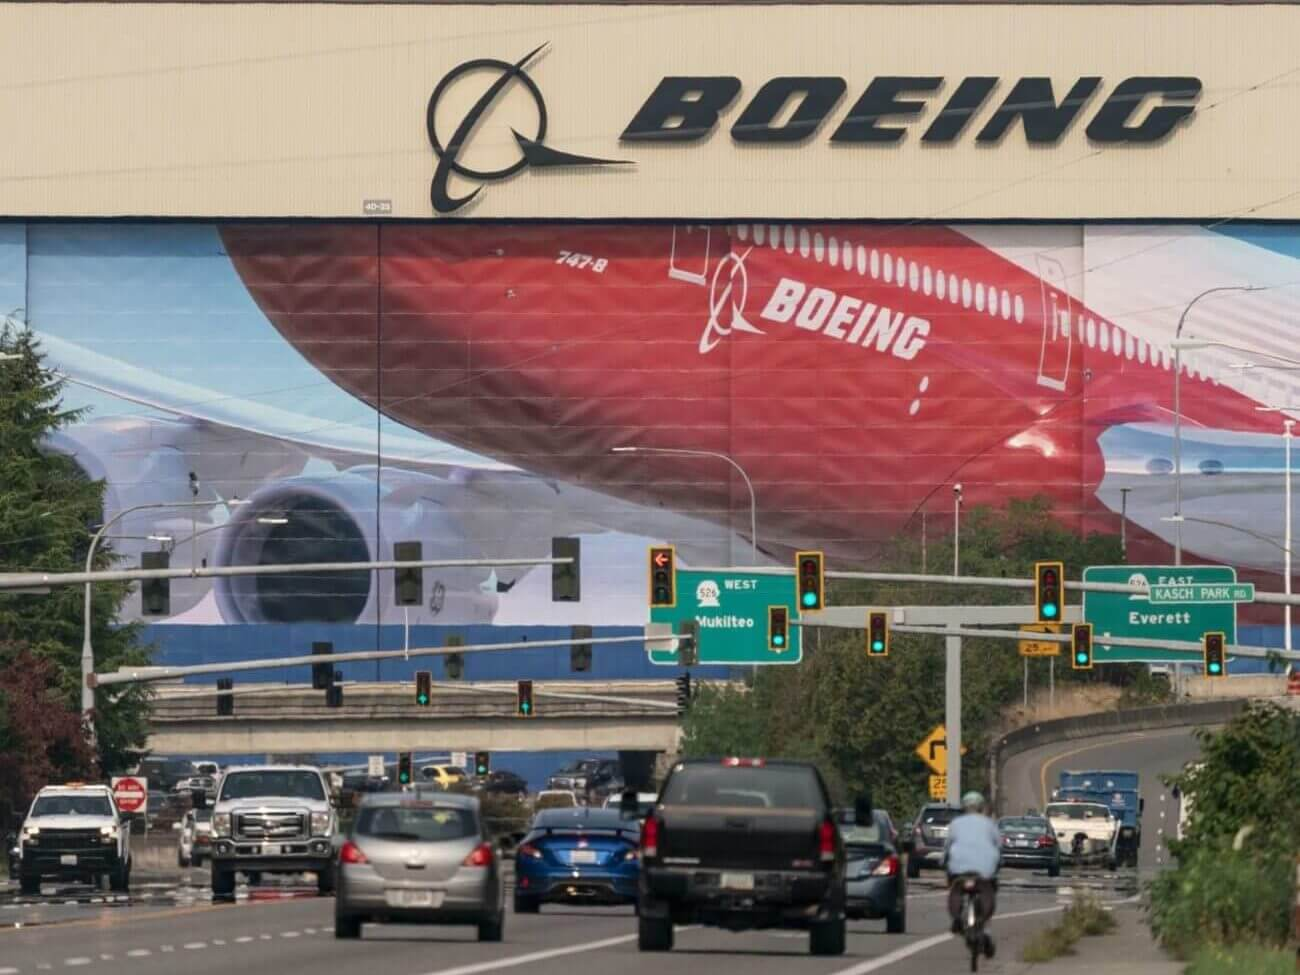 Boeing Is the Most contemporary Firm to Damage out a Antagonistic Replace Environment